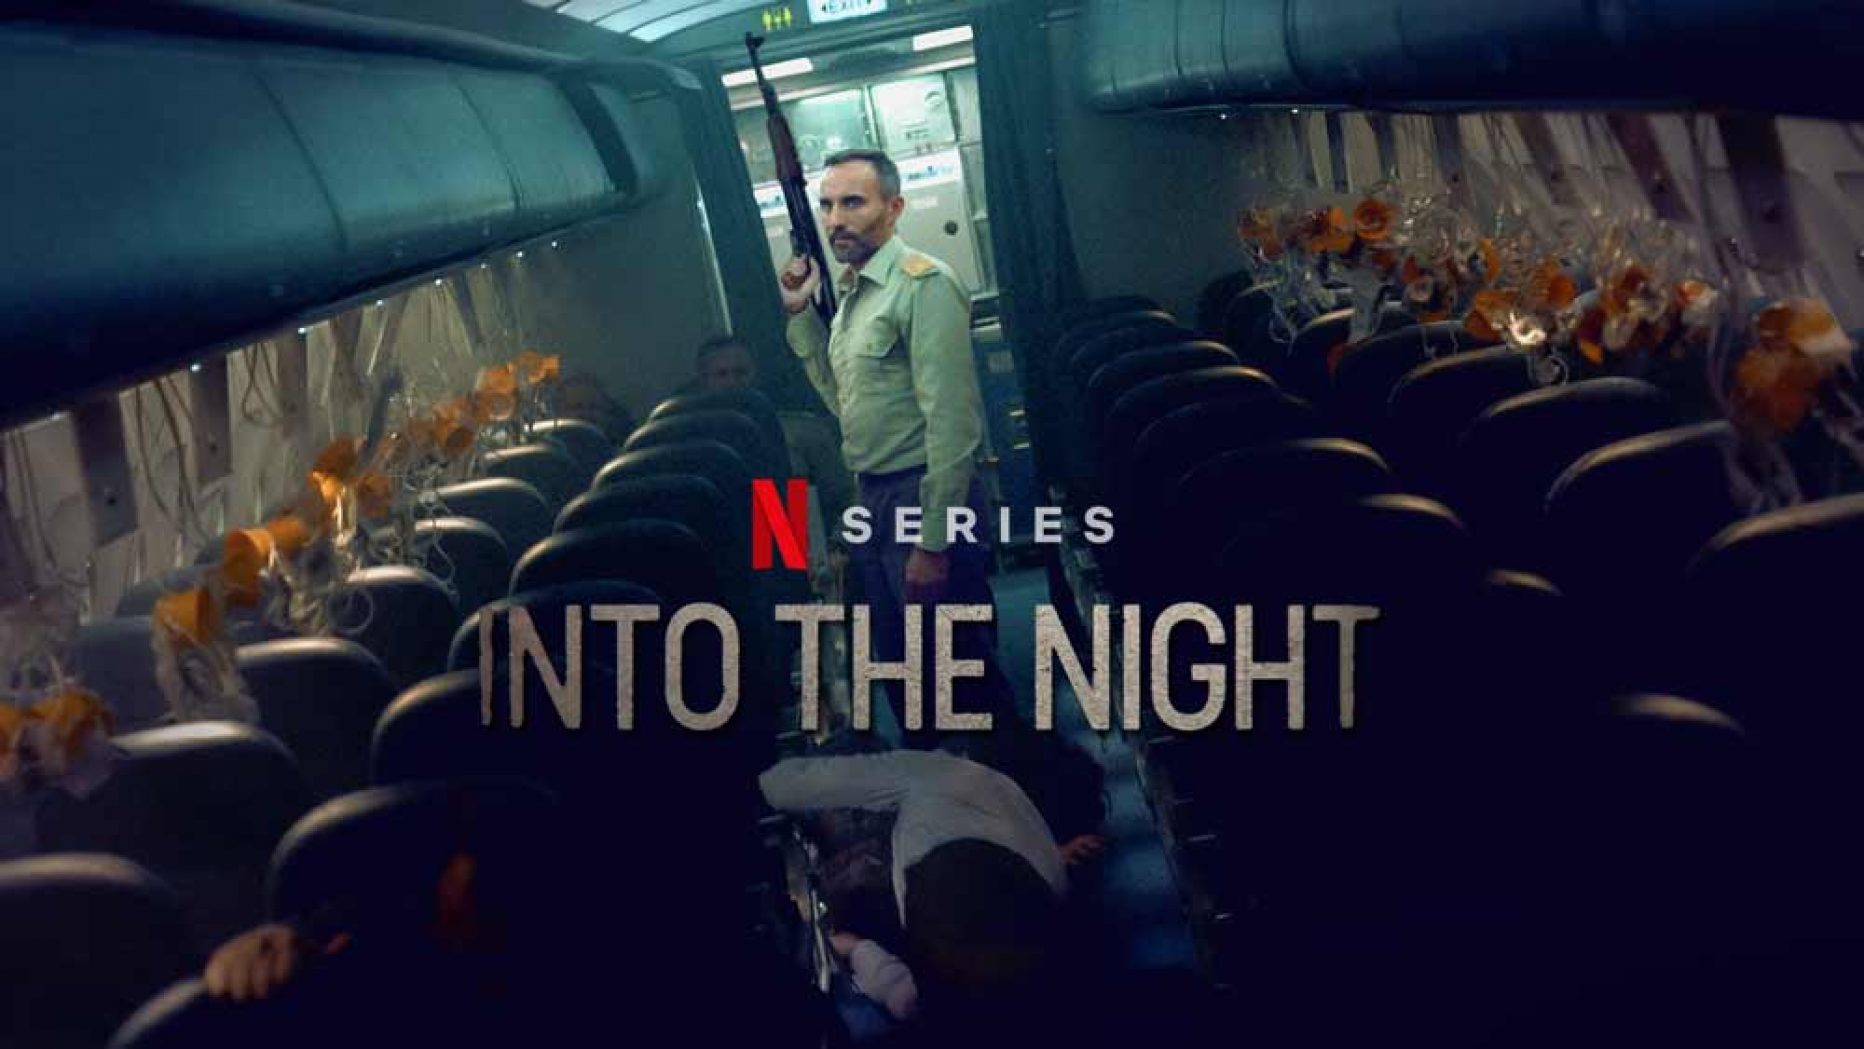 Into The Night Netflix Season 2 Web Series Release Date, Cast, Trailer